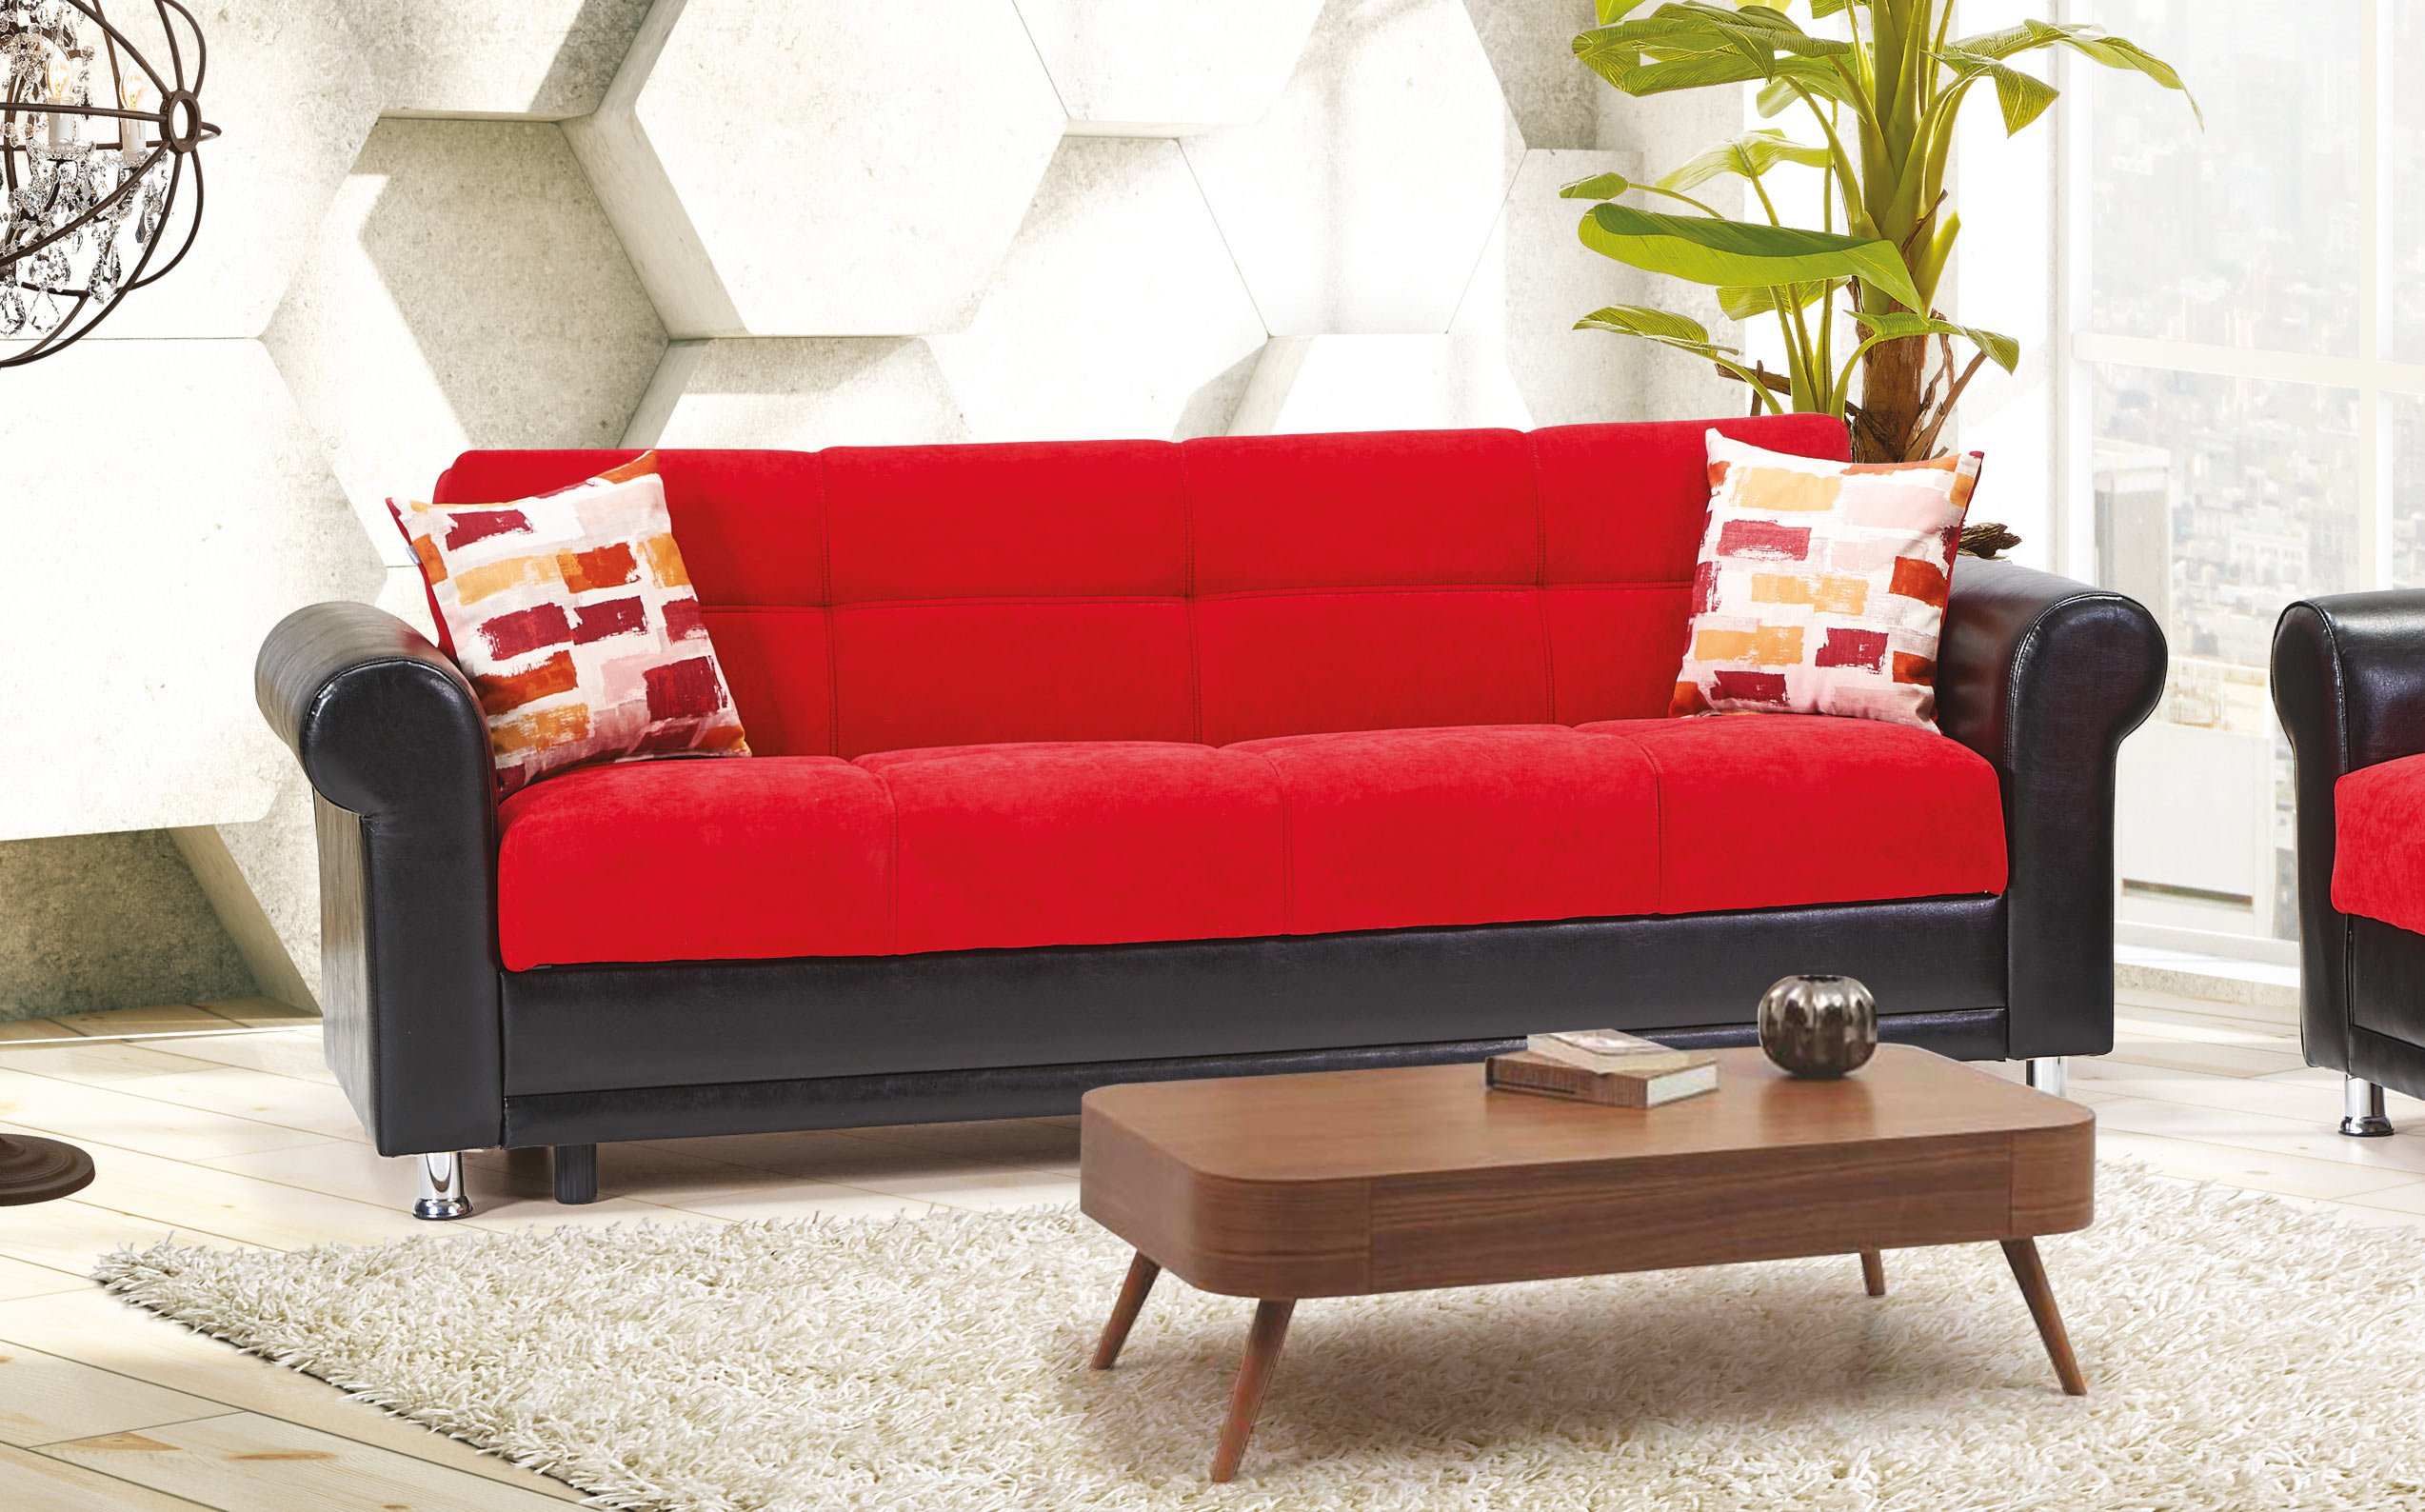 Avalanche Red Convertible Sofa by Casamode